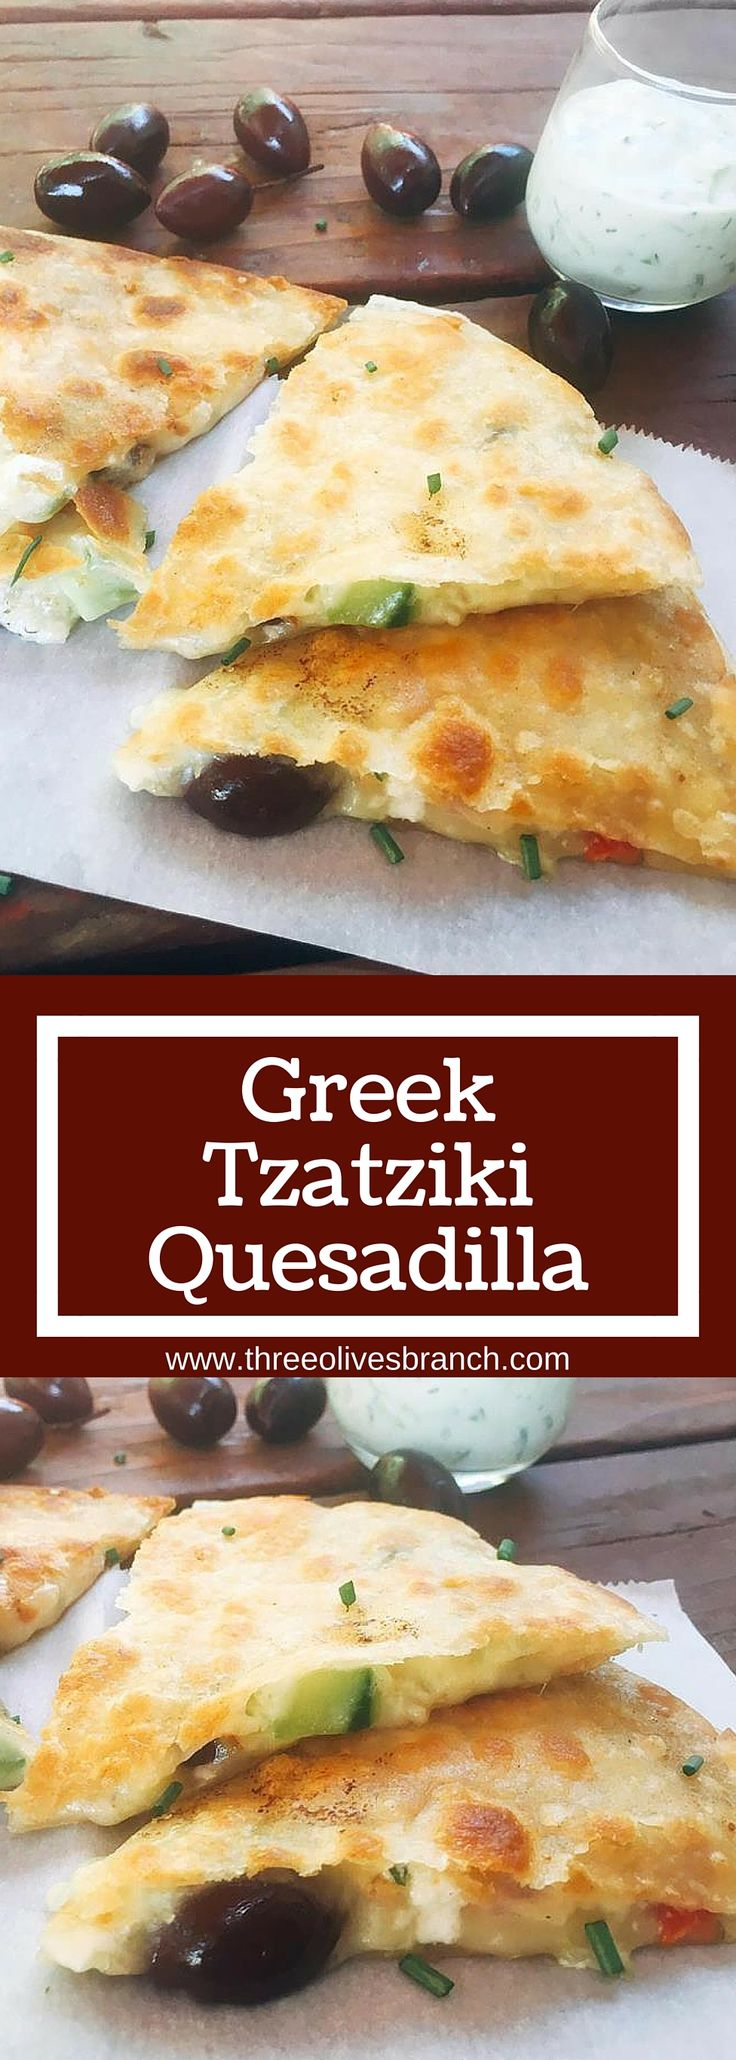 Ready in just 10 minutes! Greek Tzatziki Quesadillas are a great way to sneak some veggies into a fun snack or meal! All the flavors of Greek…